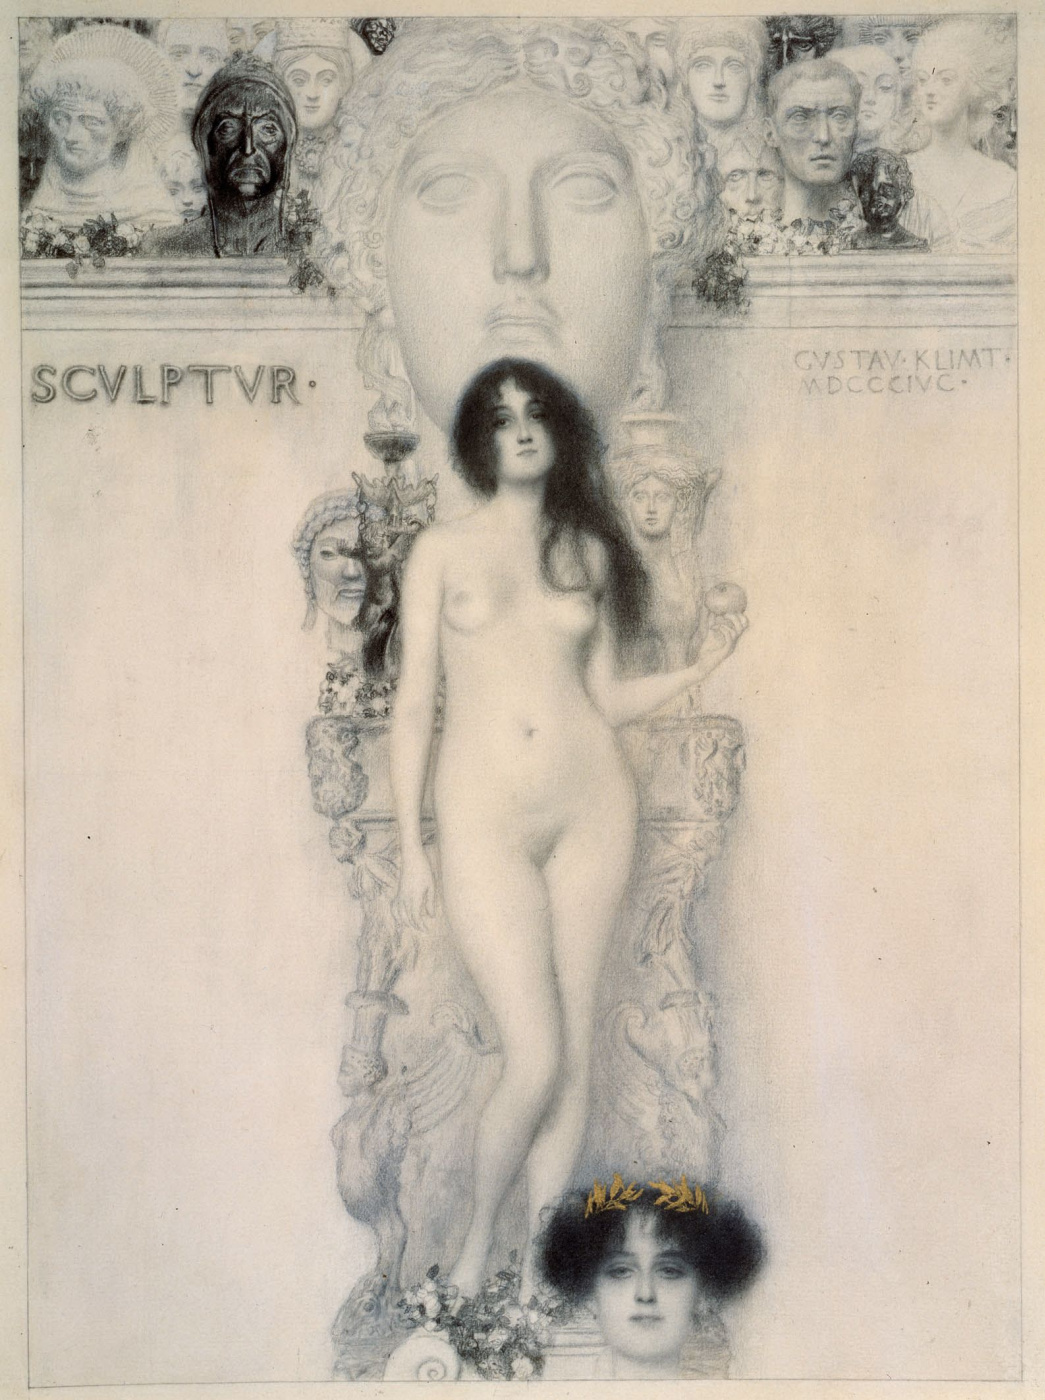 Gustav Klimt. Allegory of sculpture II